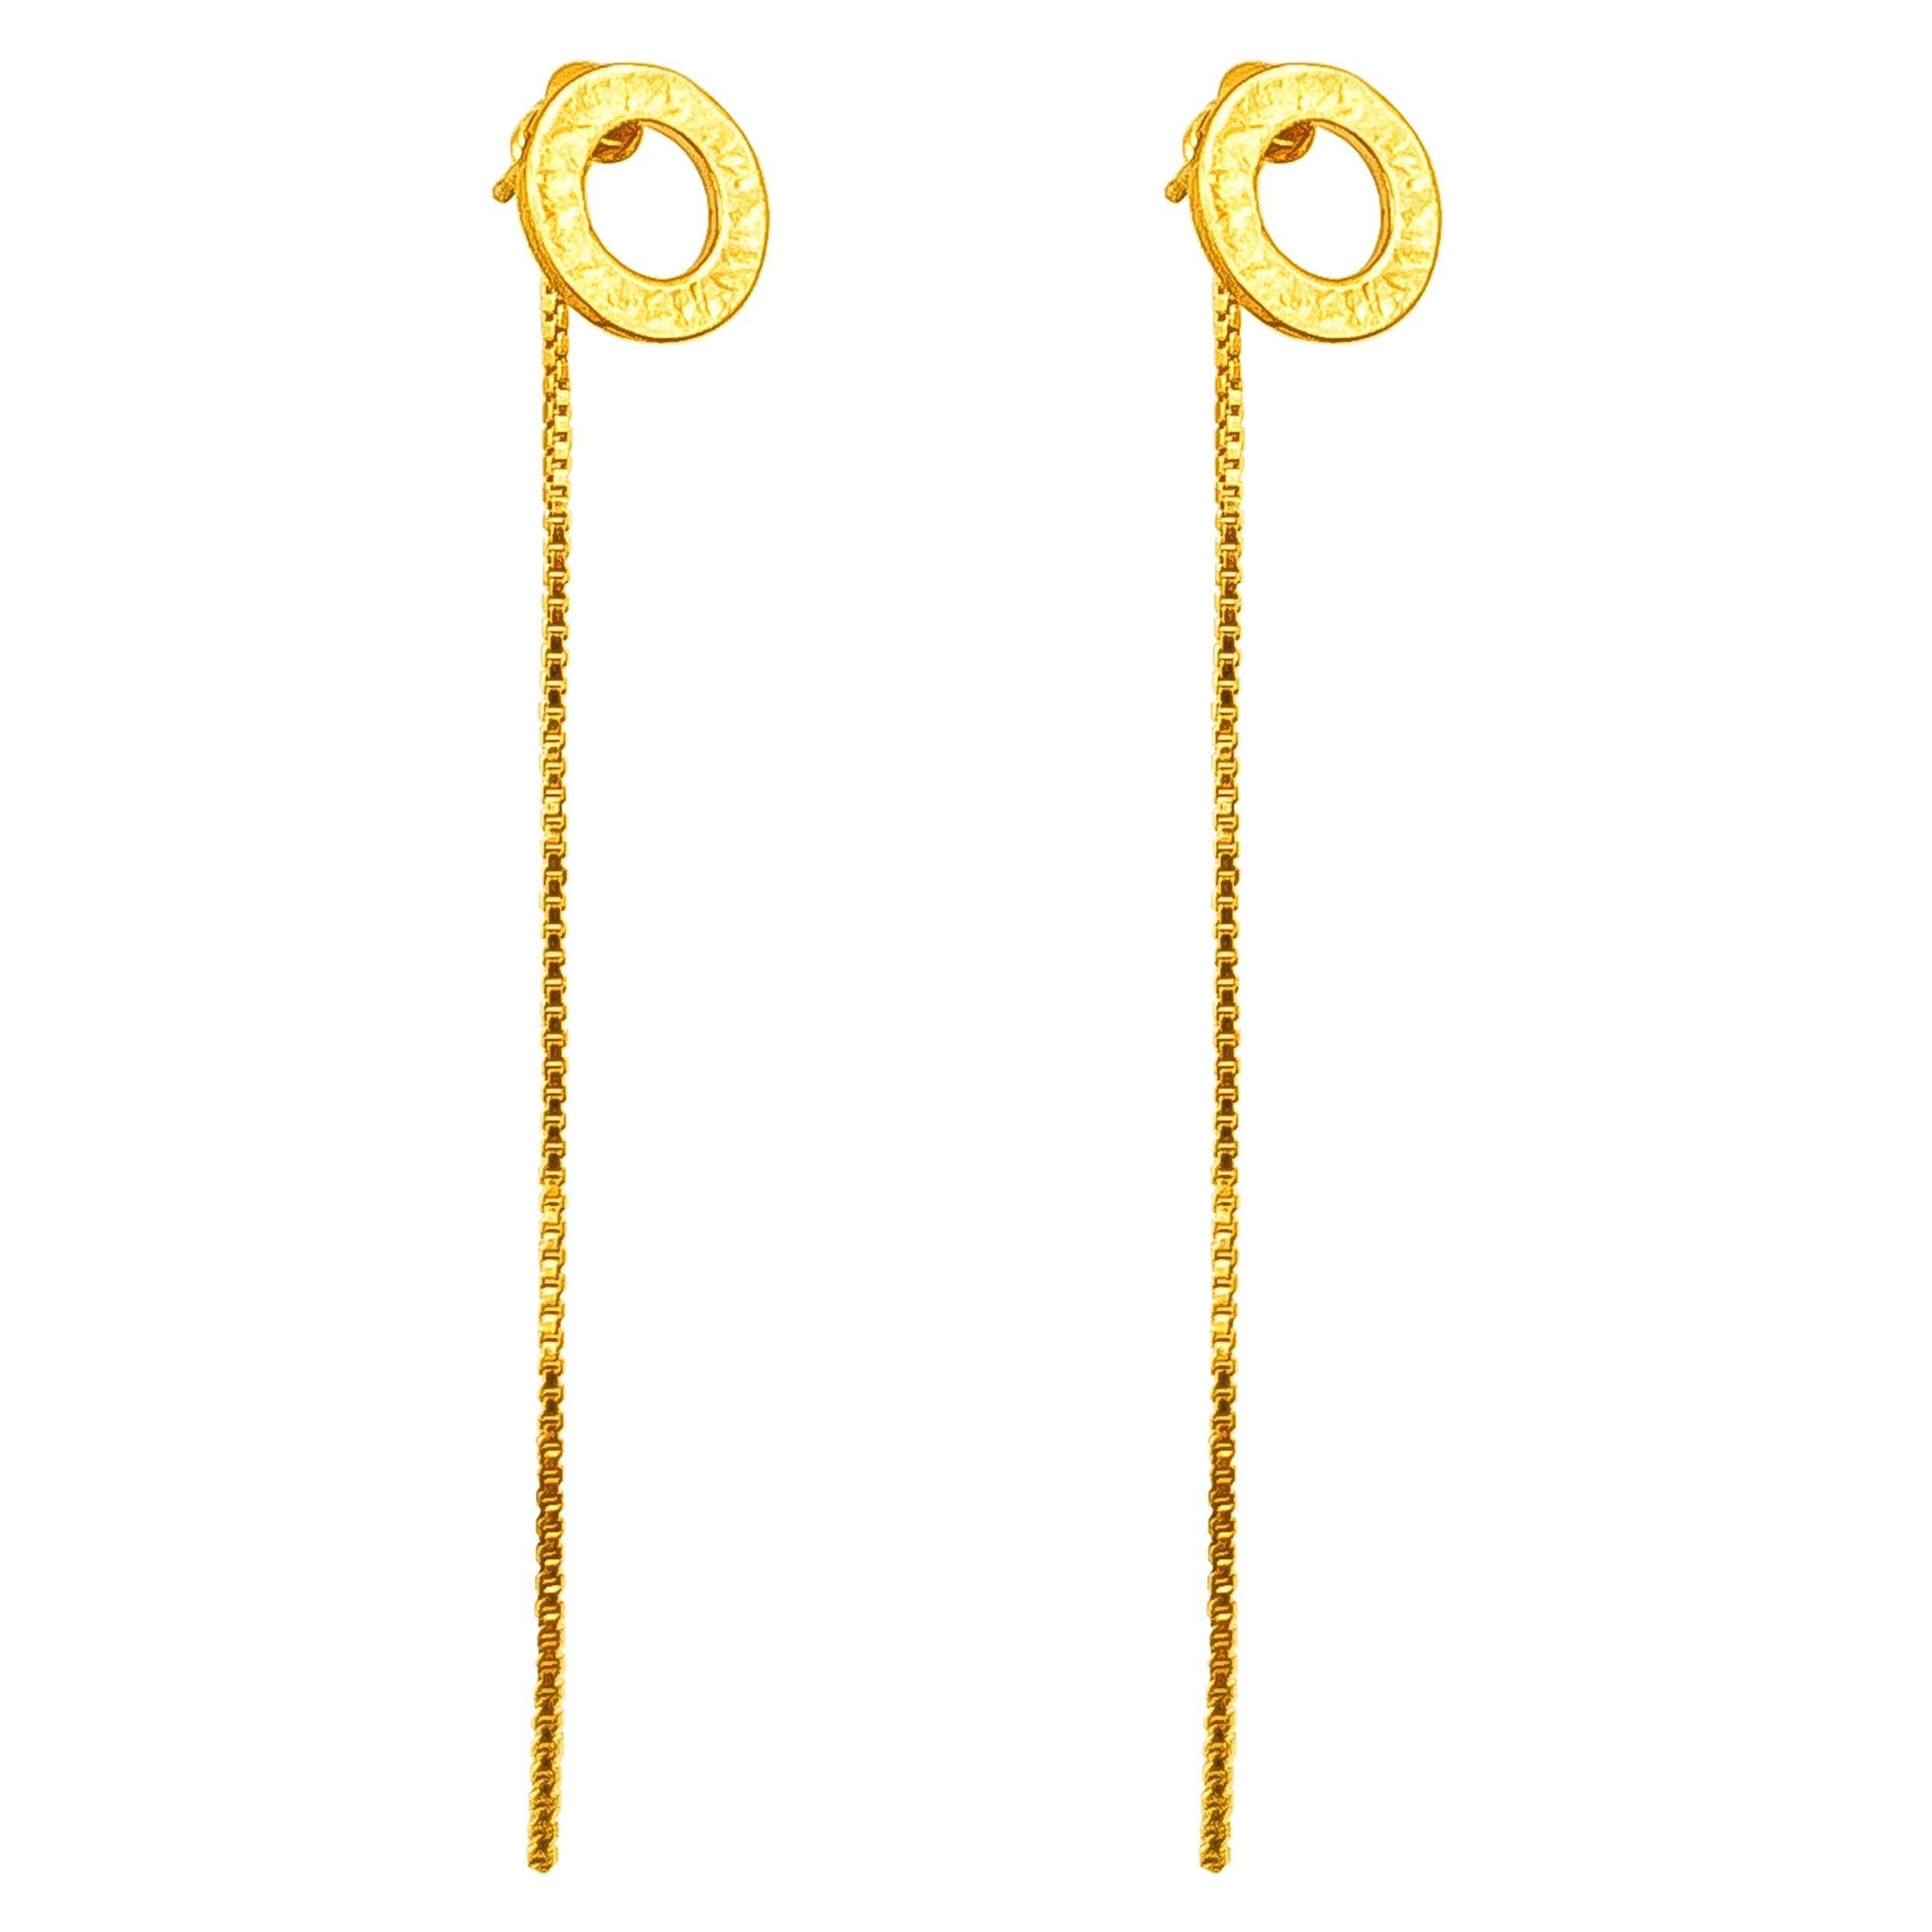 Chloe Stud Earrings With Chain Detail | Gold